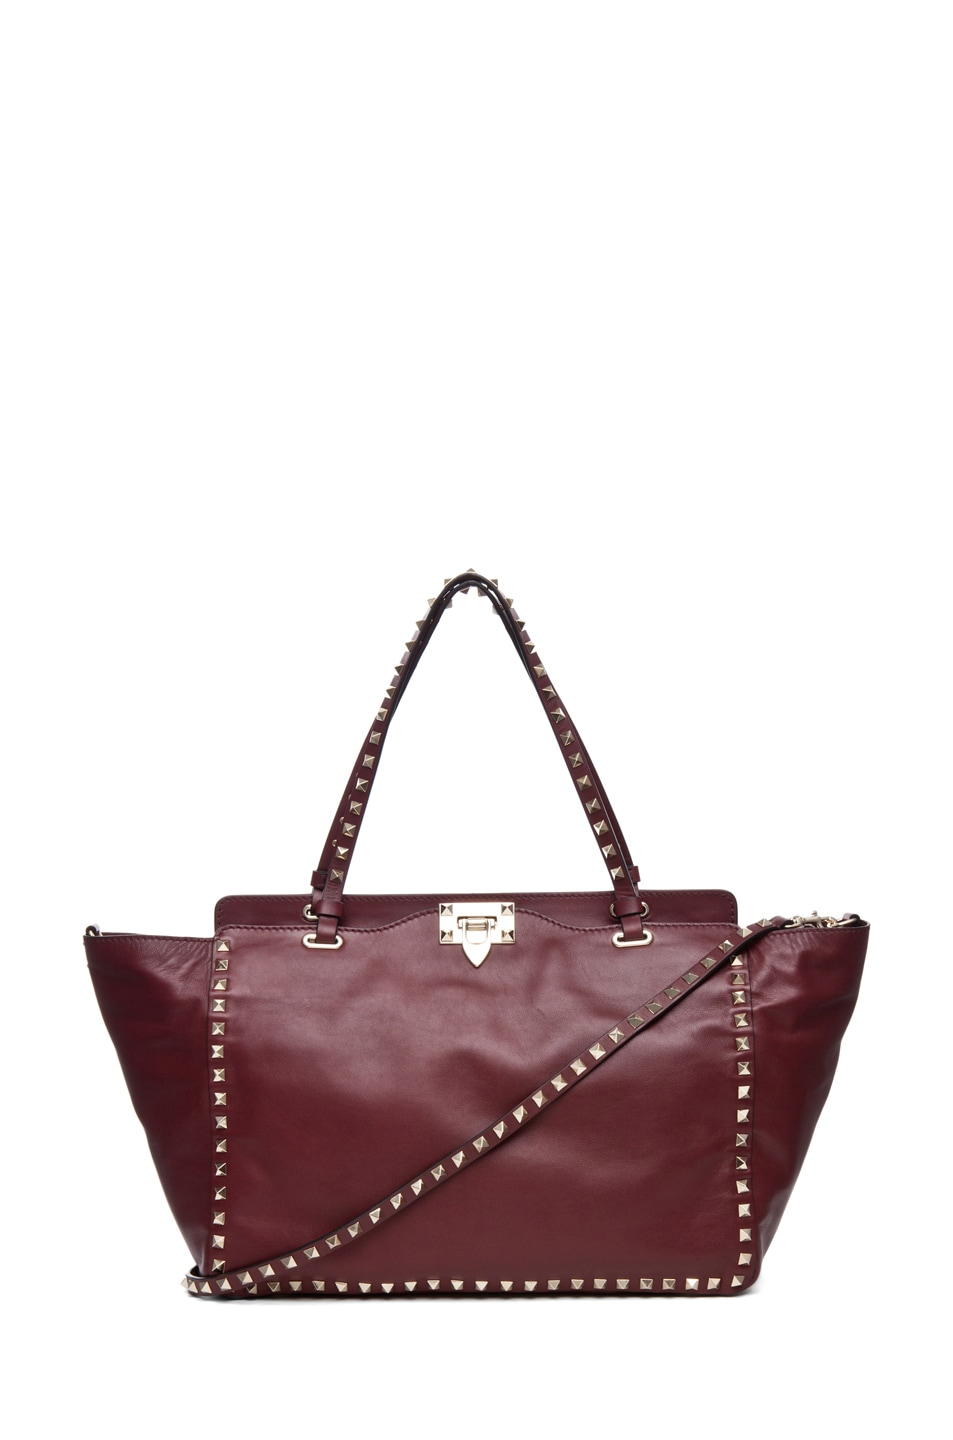 Image 1 of Valentino Rockstud Small Tote in Prun